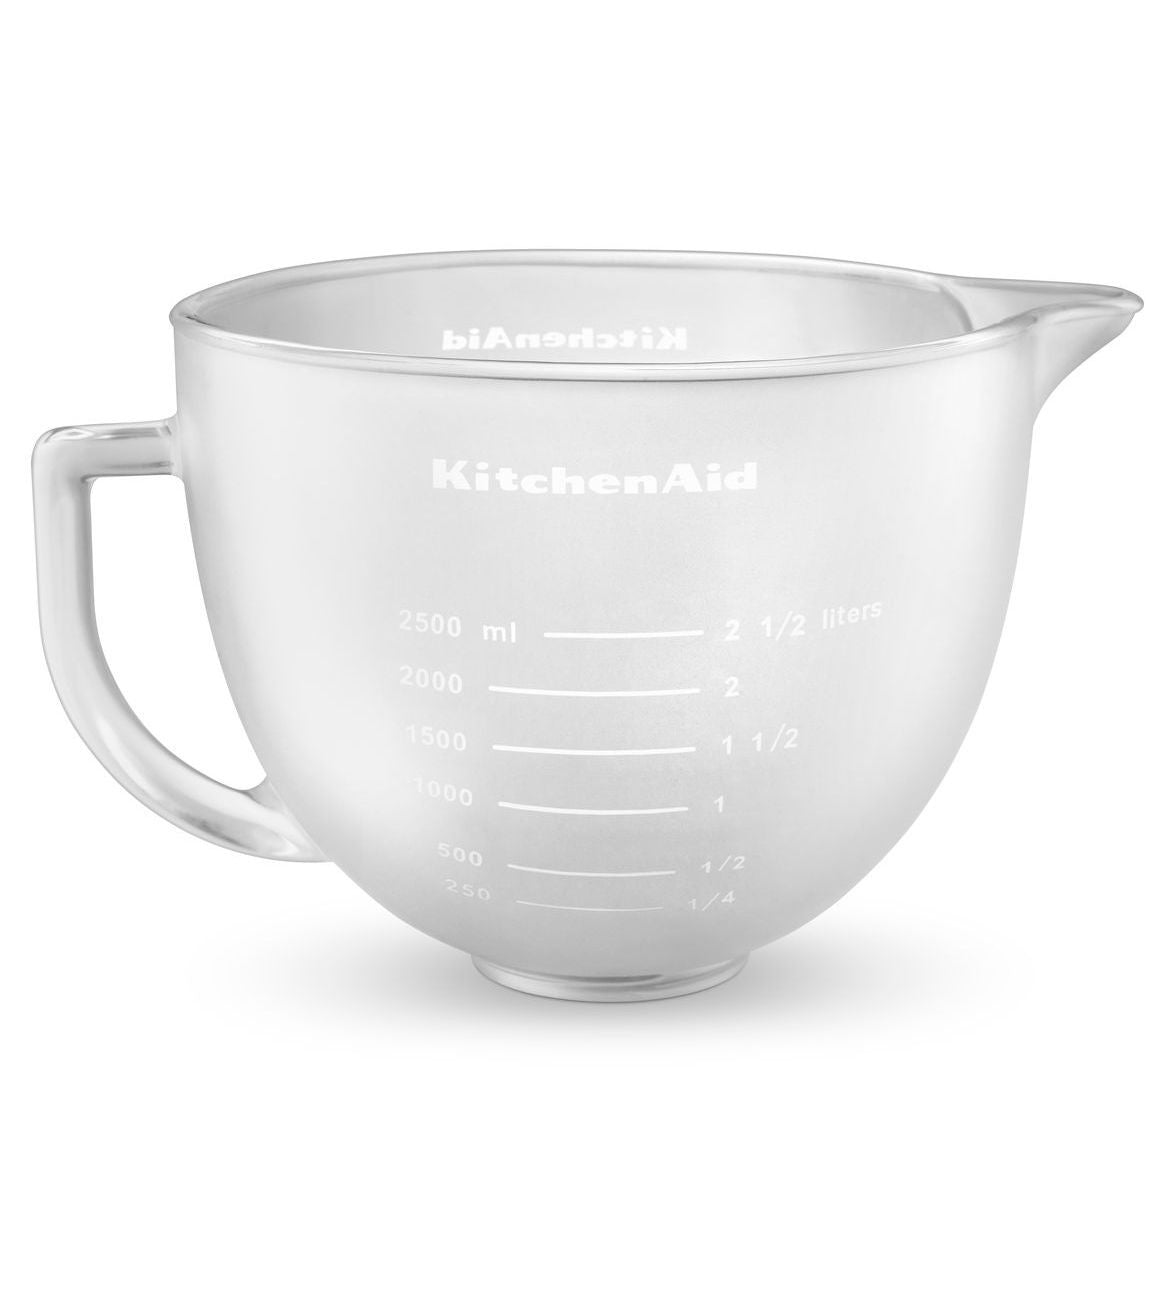 Kitchenaid 5 Qt. Frosted Bowl with Measurement Markings Pour Spout Lid K5GBF